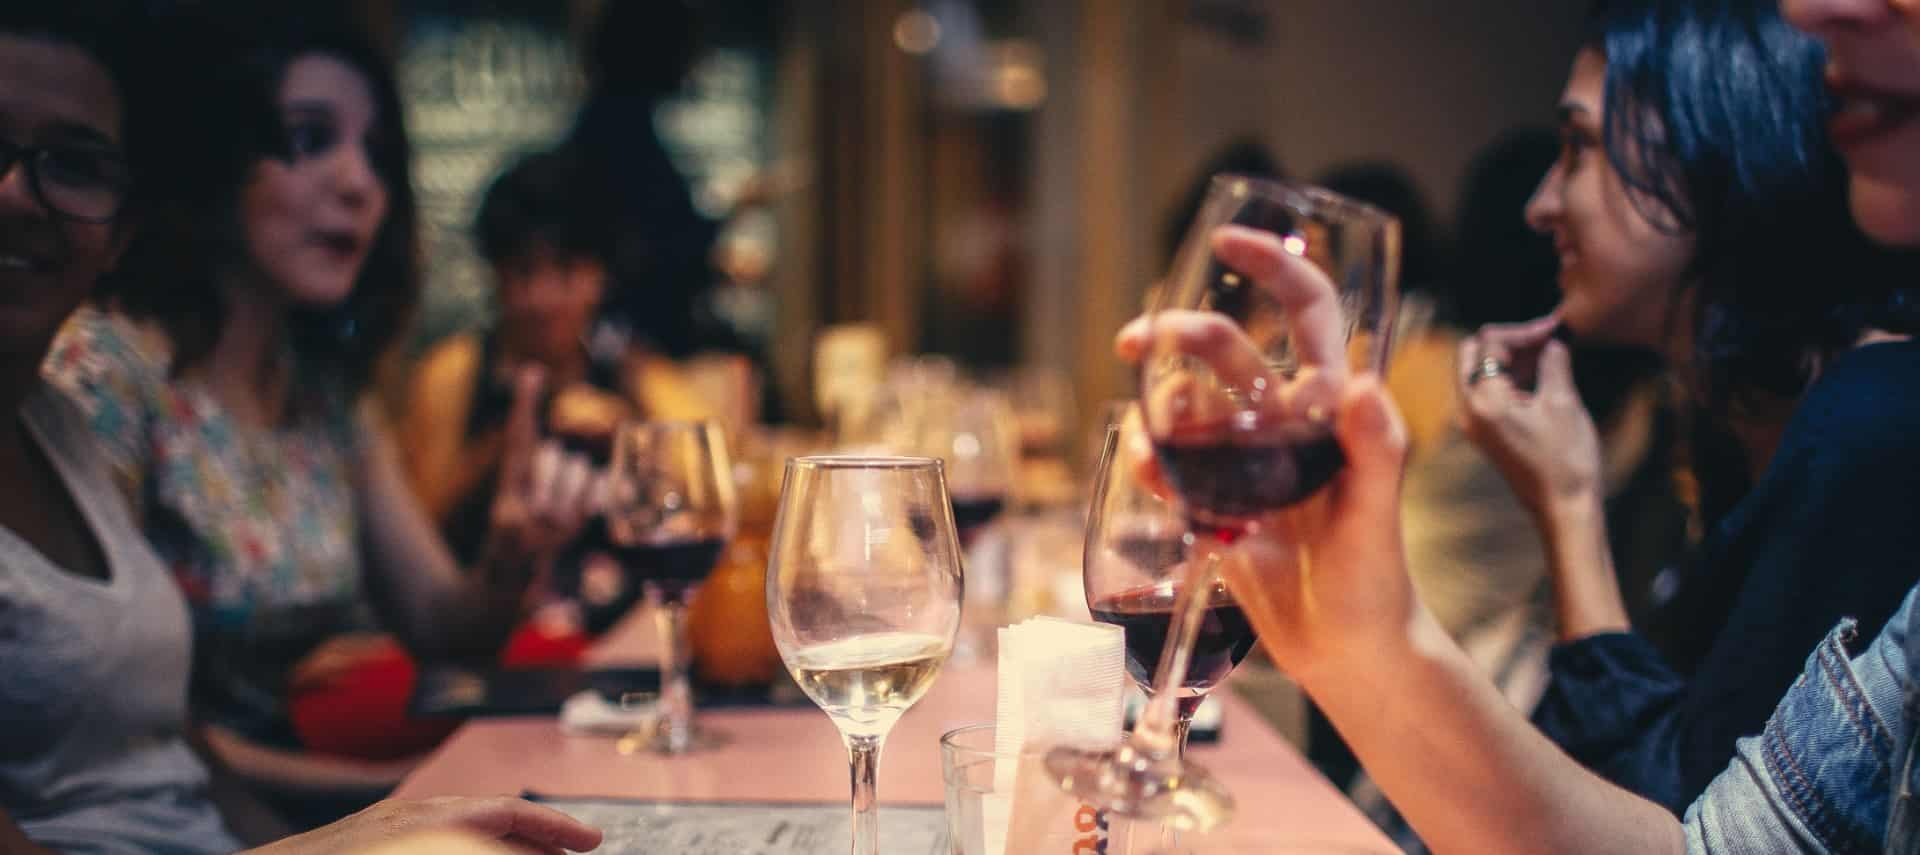 People at a restaurant sitting at a table talking, laughing, and drinking wine